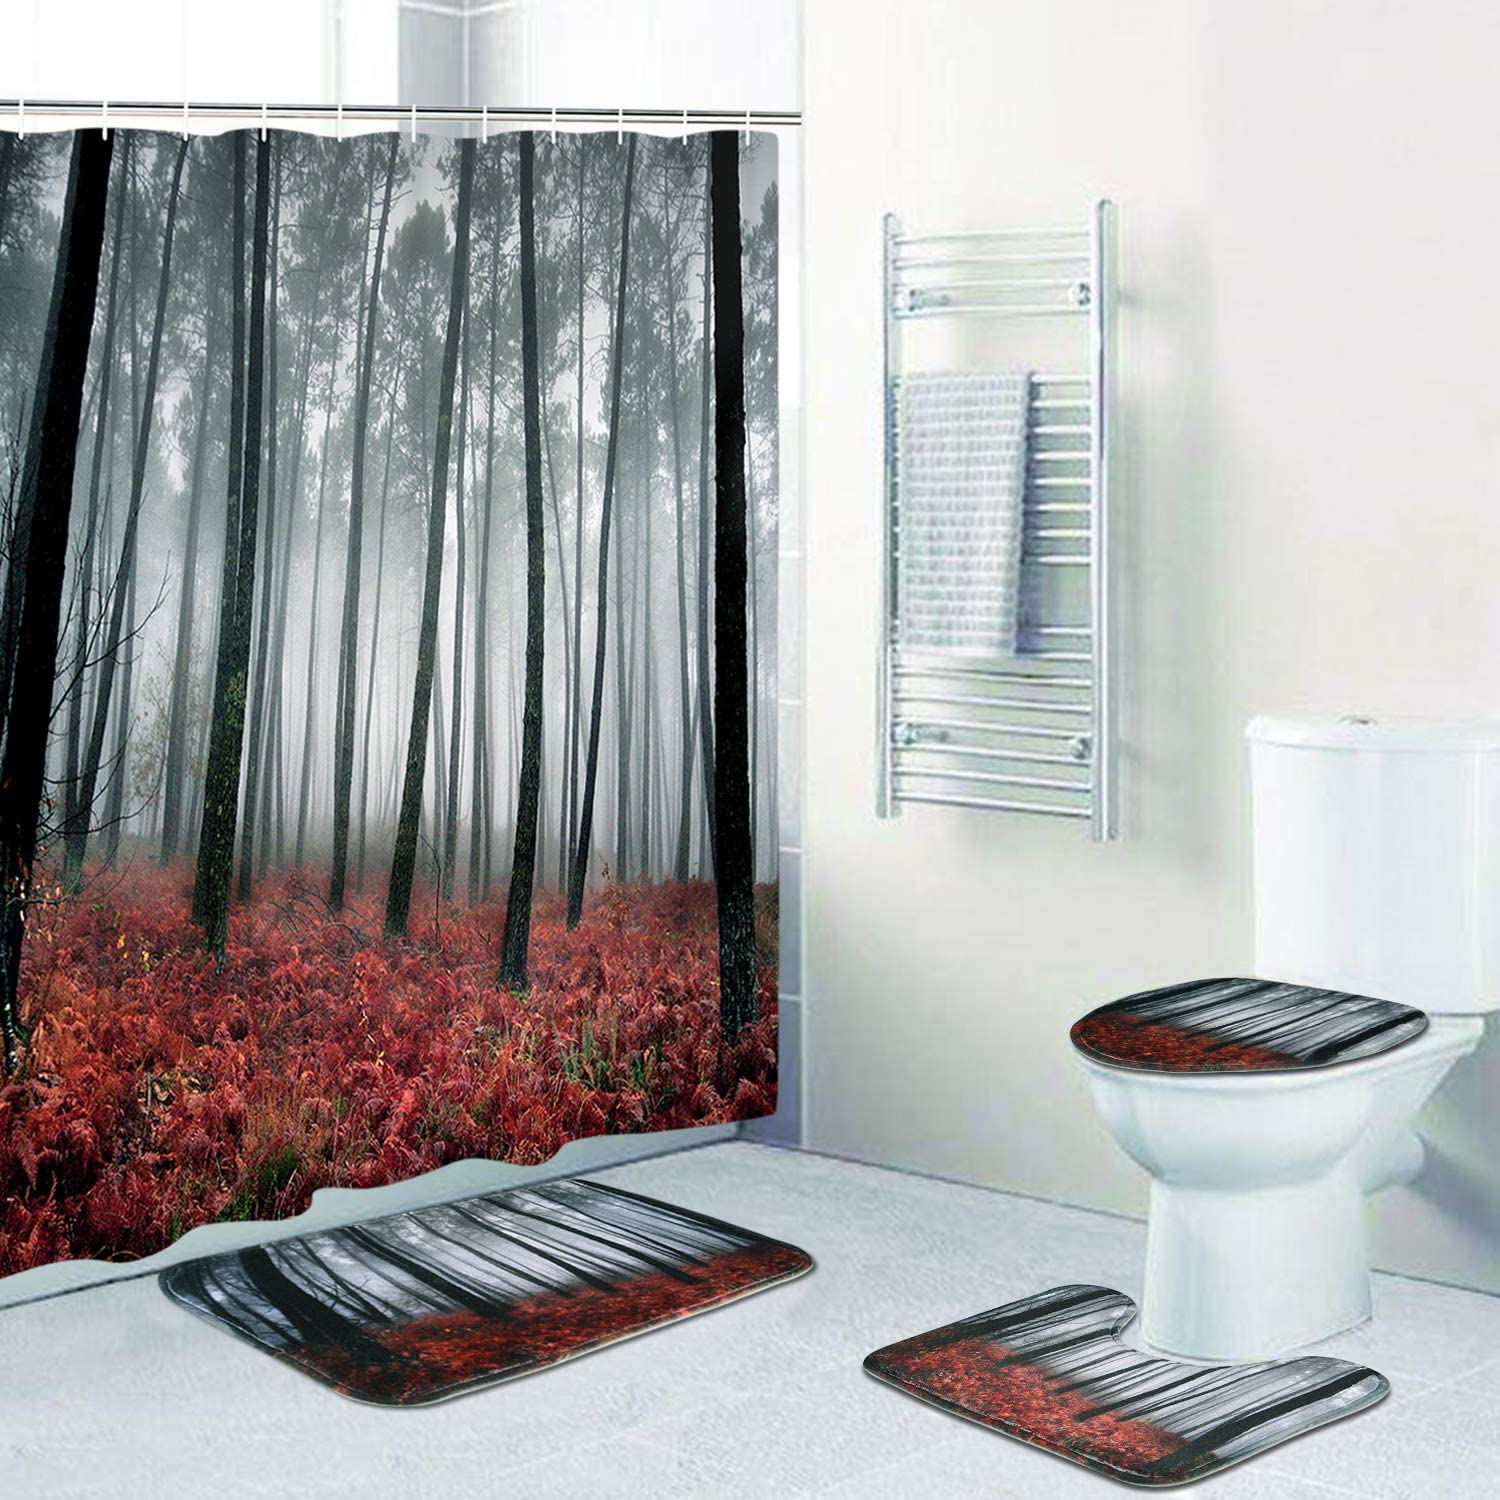 Mystic Forest Shower Curtain Sets with Non-Slip Rugs, Toilet Lid Cover and Bath Mat, Trees Red Leaves Shower Curtains with 12 Hooks, Durable Waterproof Bath Curtain